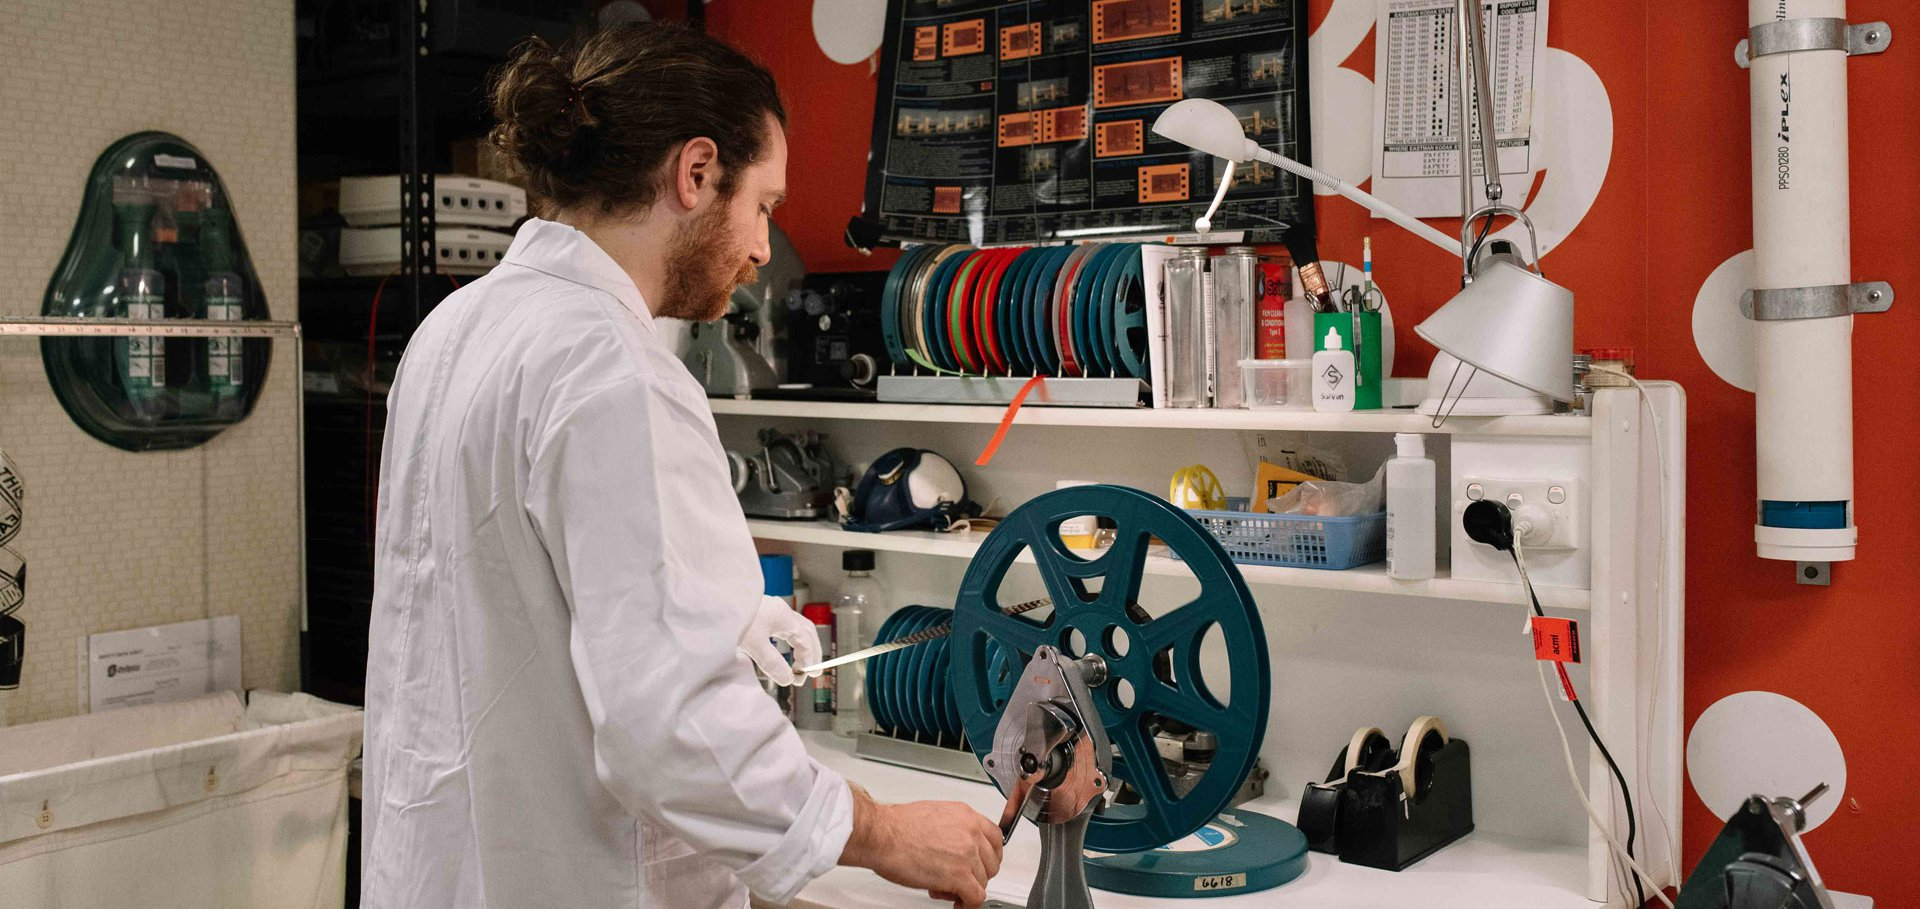 Collections technician Ben Abbott checking the condition of a 16mm film at a winding bench. Image credit: Phoebe Powell